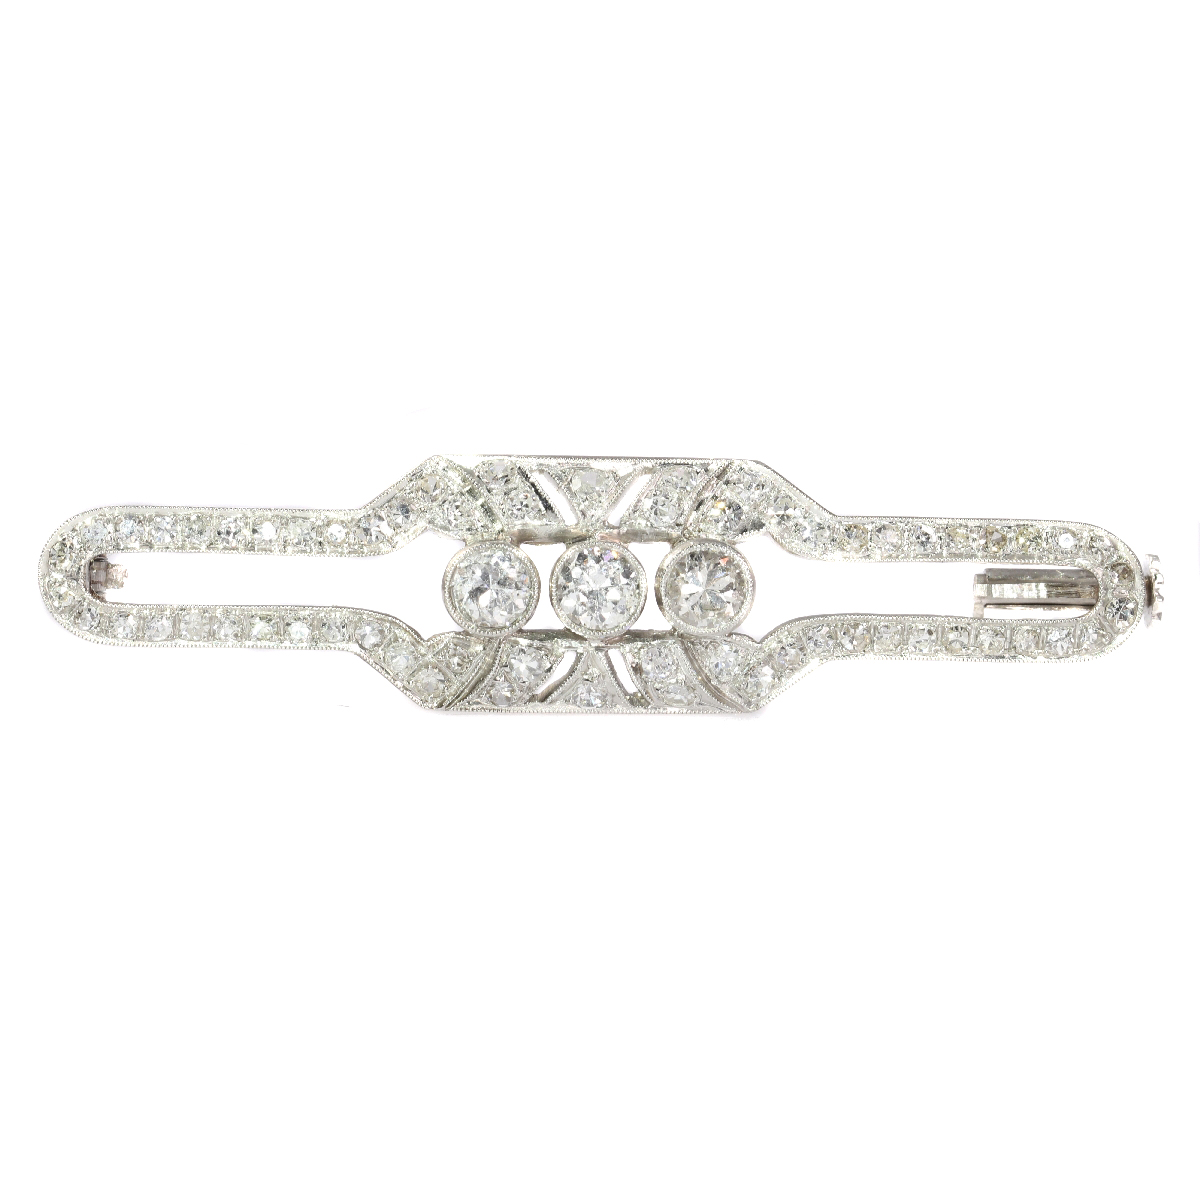 Vintage Art Deco platinum brooch set with diamonds